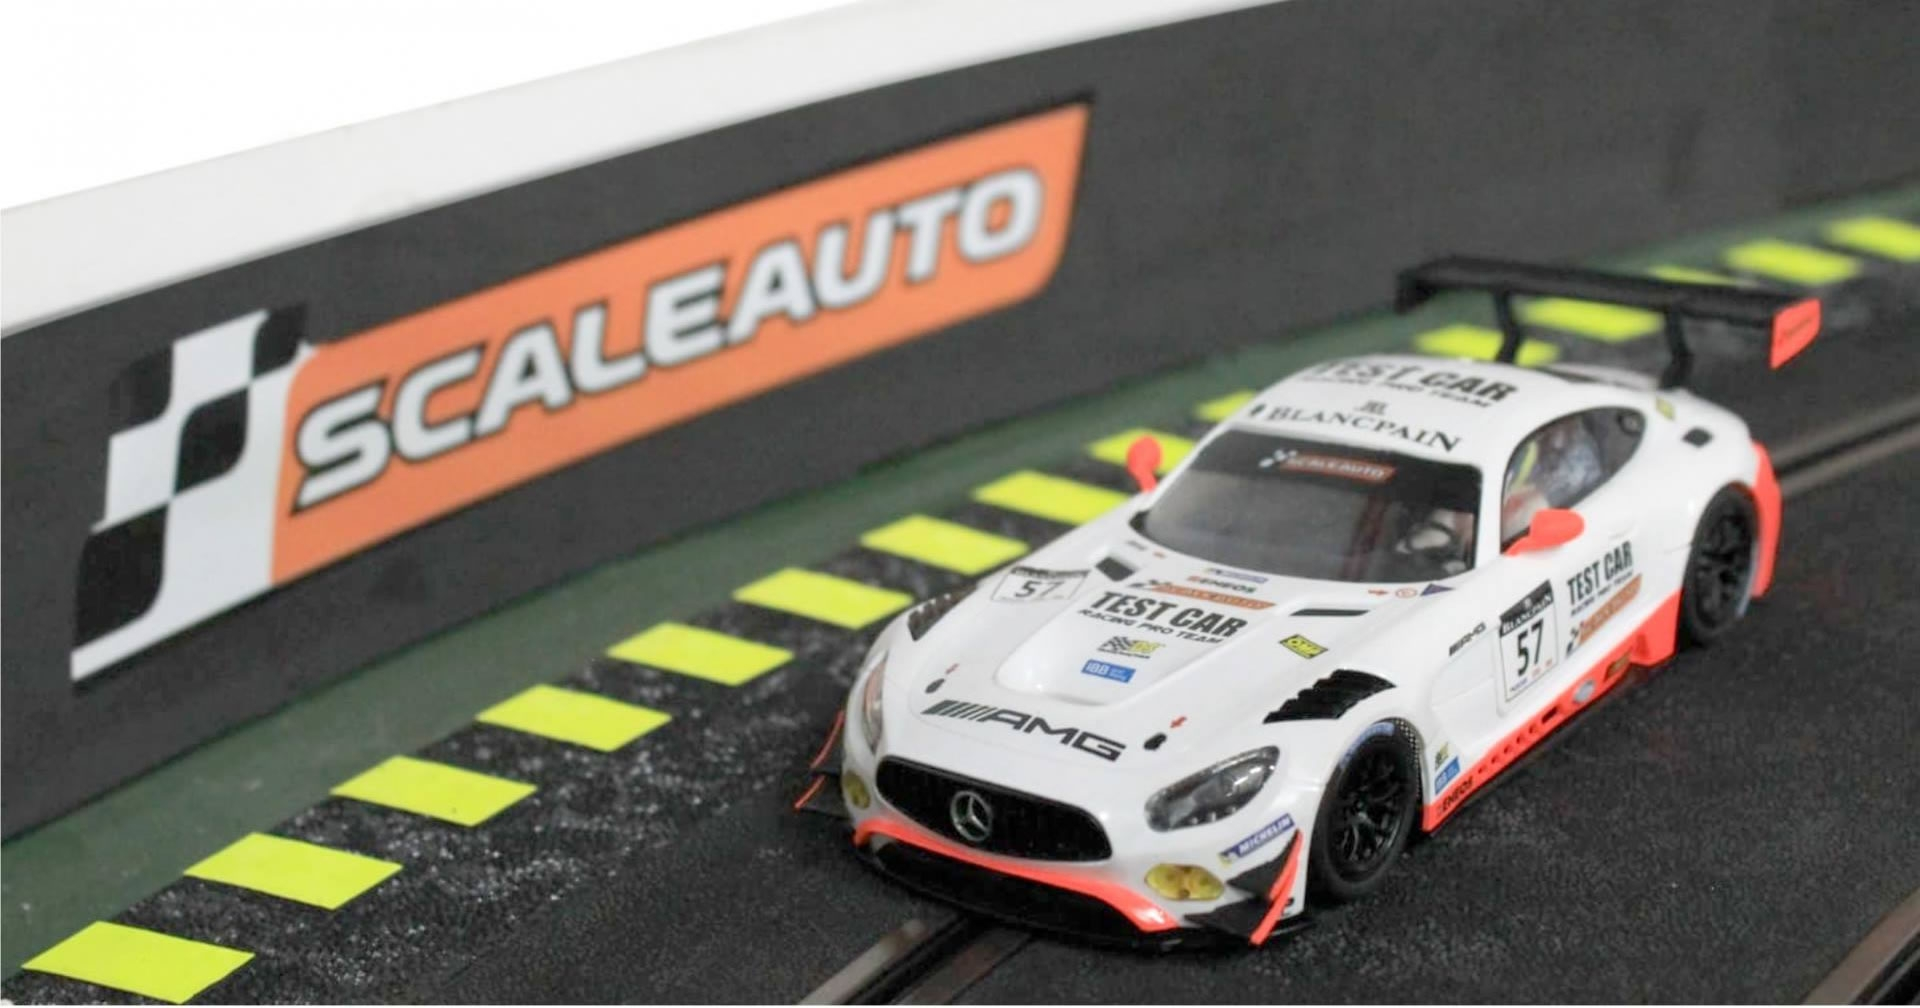 MB-A GT3 - Mercedes-AMG GT3 Scaleauto